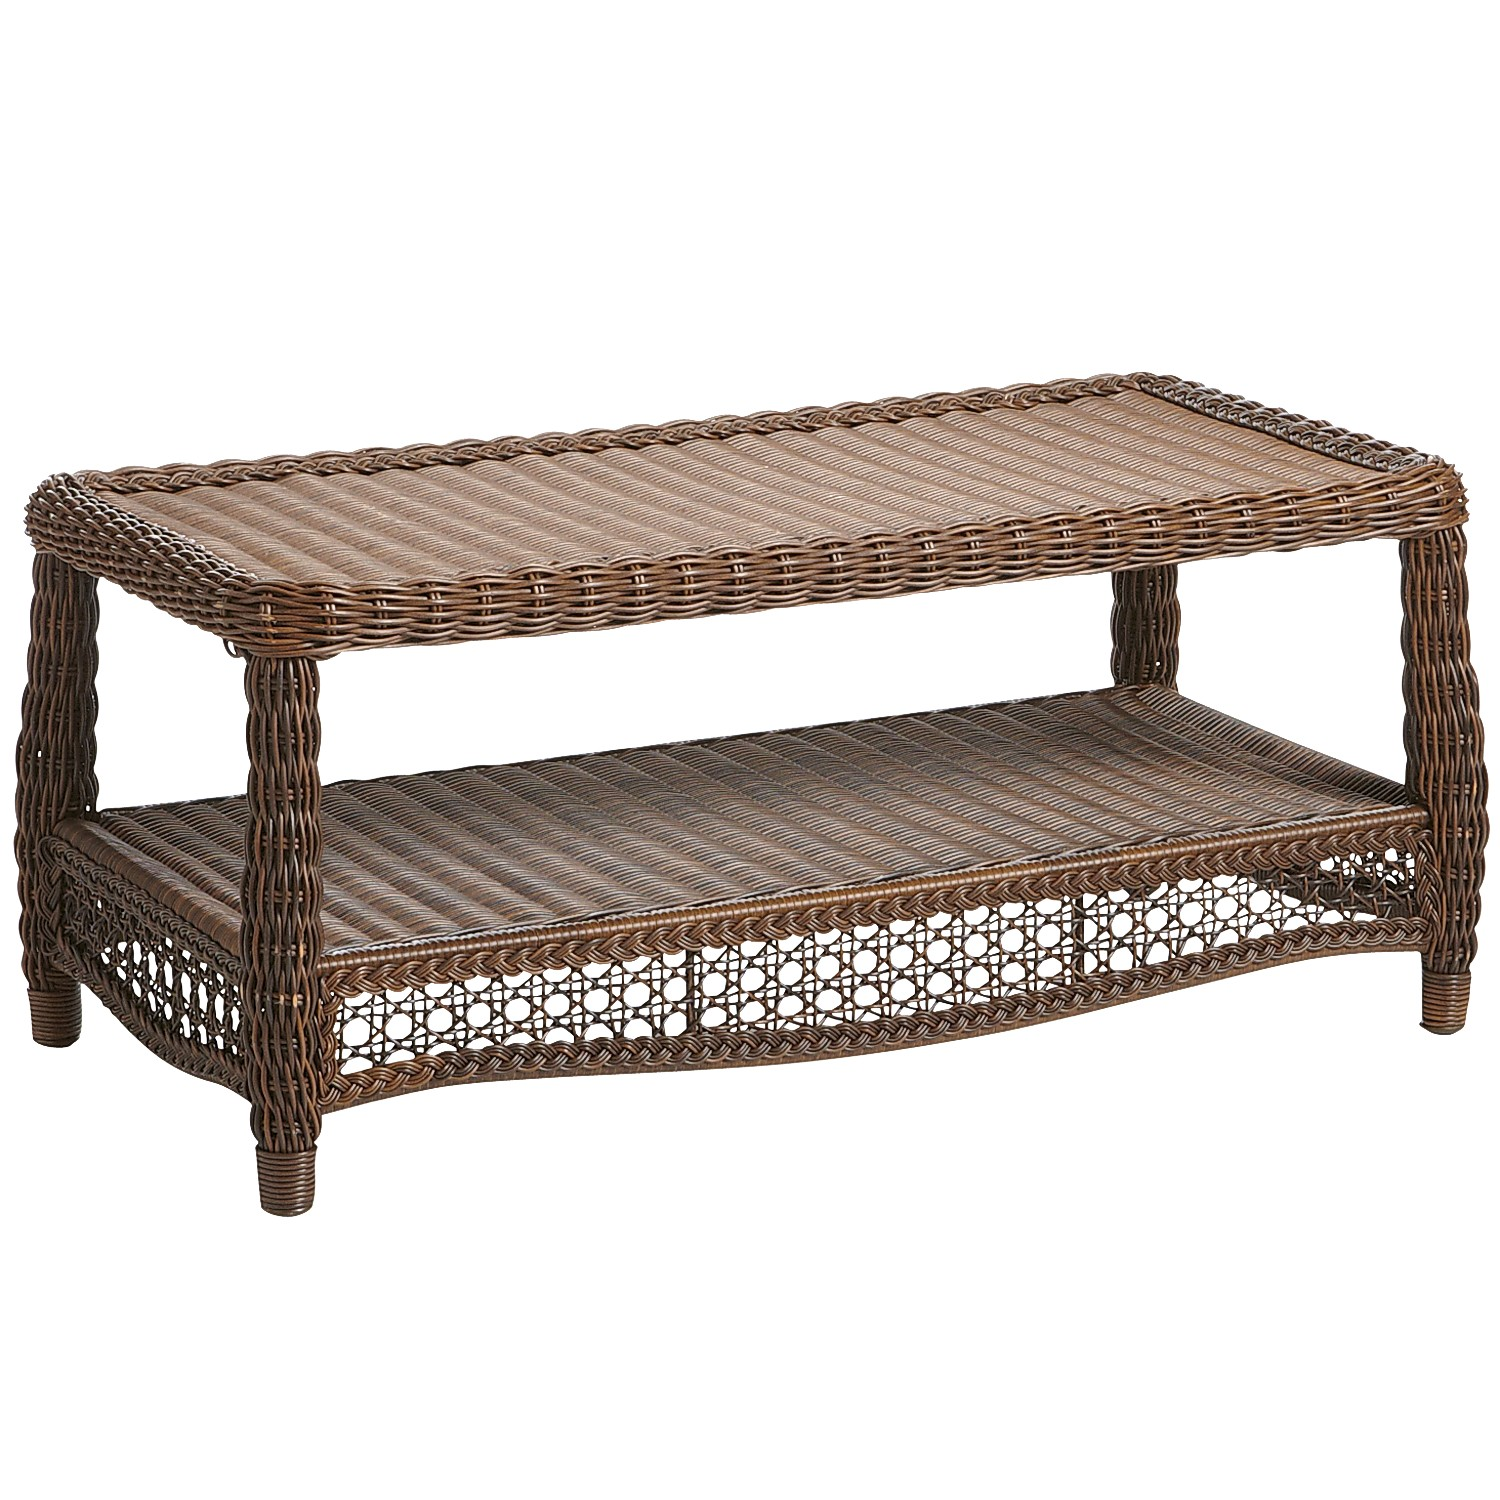 Sunset Pier Chestnut Brown Coffee Table